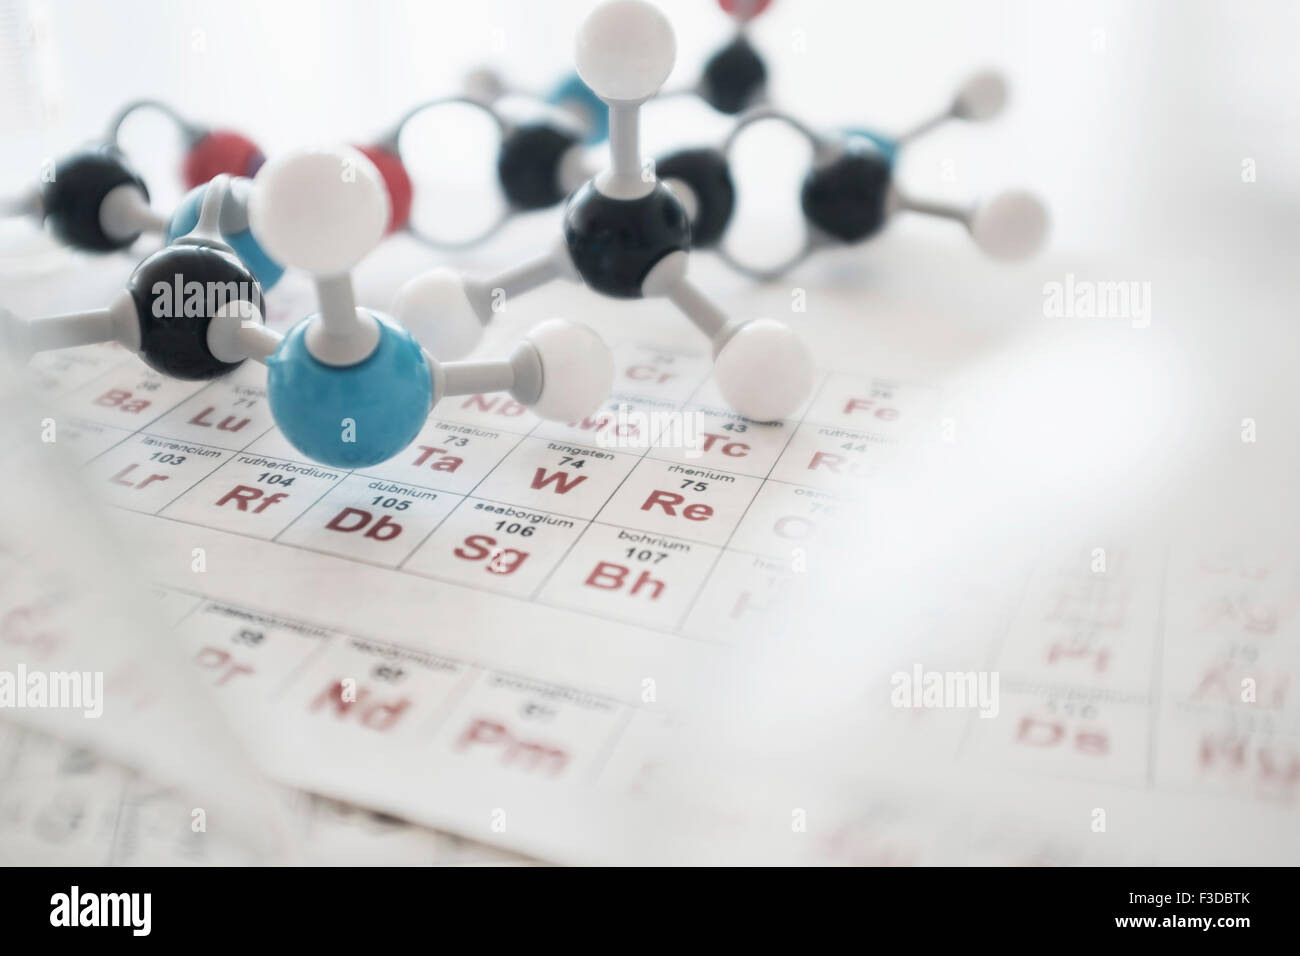 Molecular structure and periodic table on desk - Stock Image